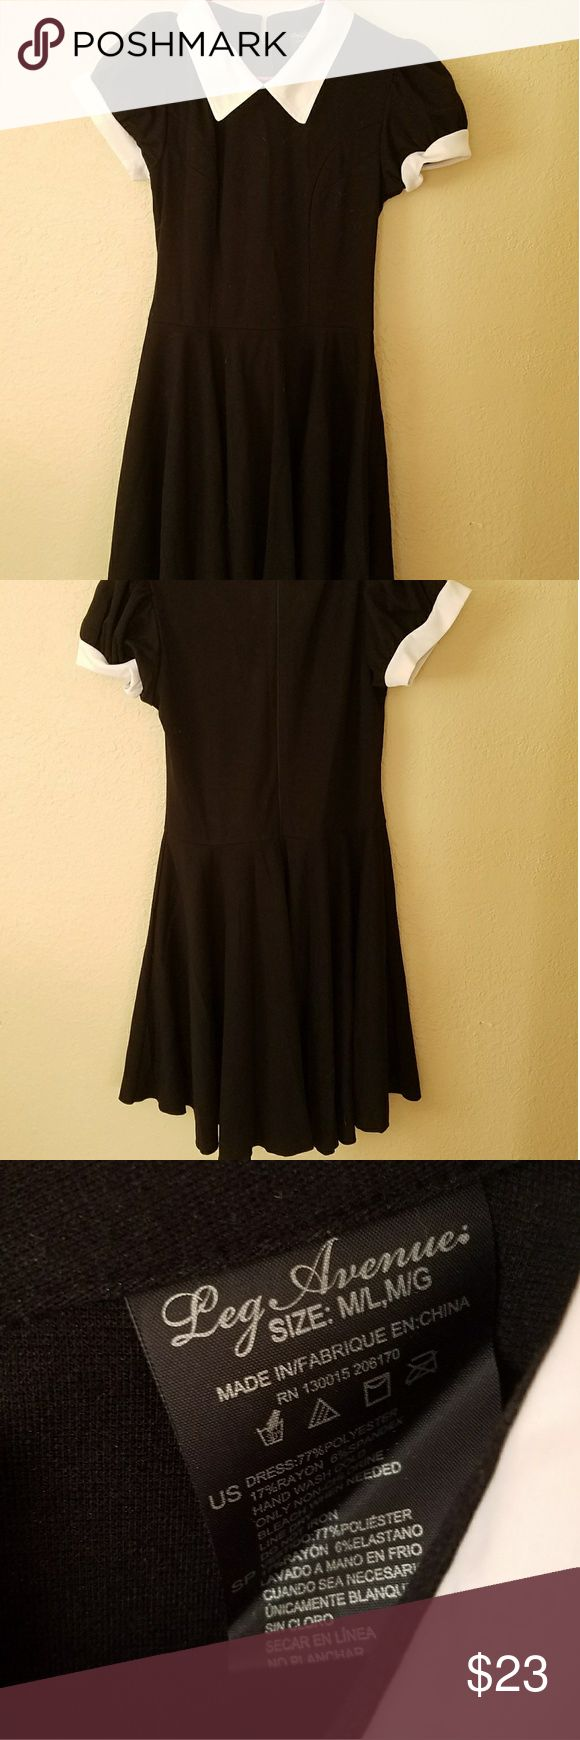 Leg Avenue dress Black dress with white collar and sleeves, bought,  but never worn. leg avenue Dresses Mini